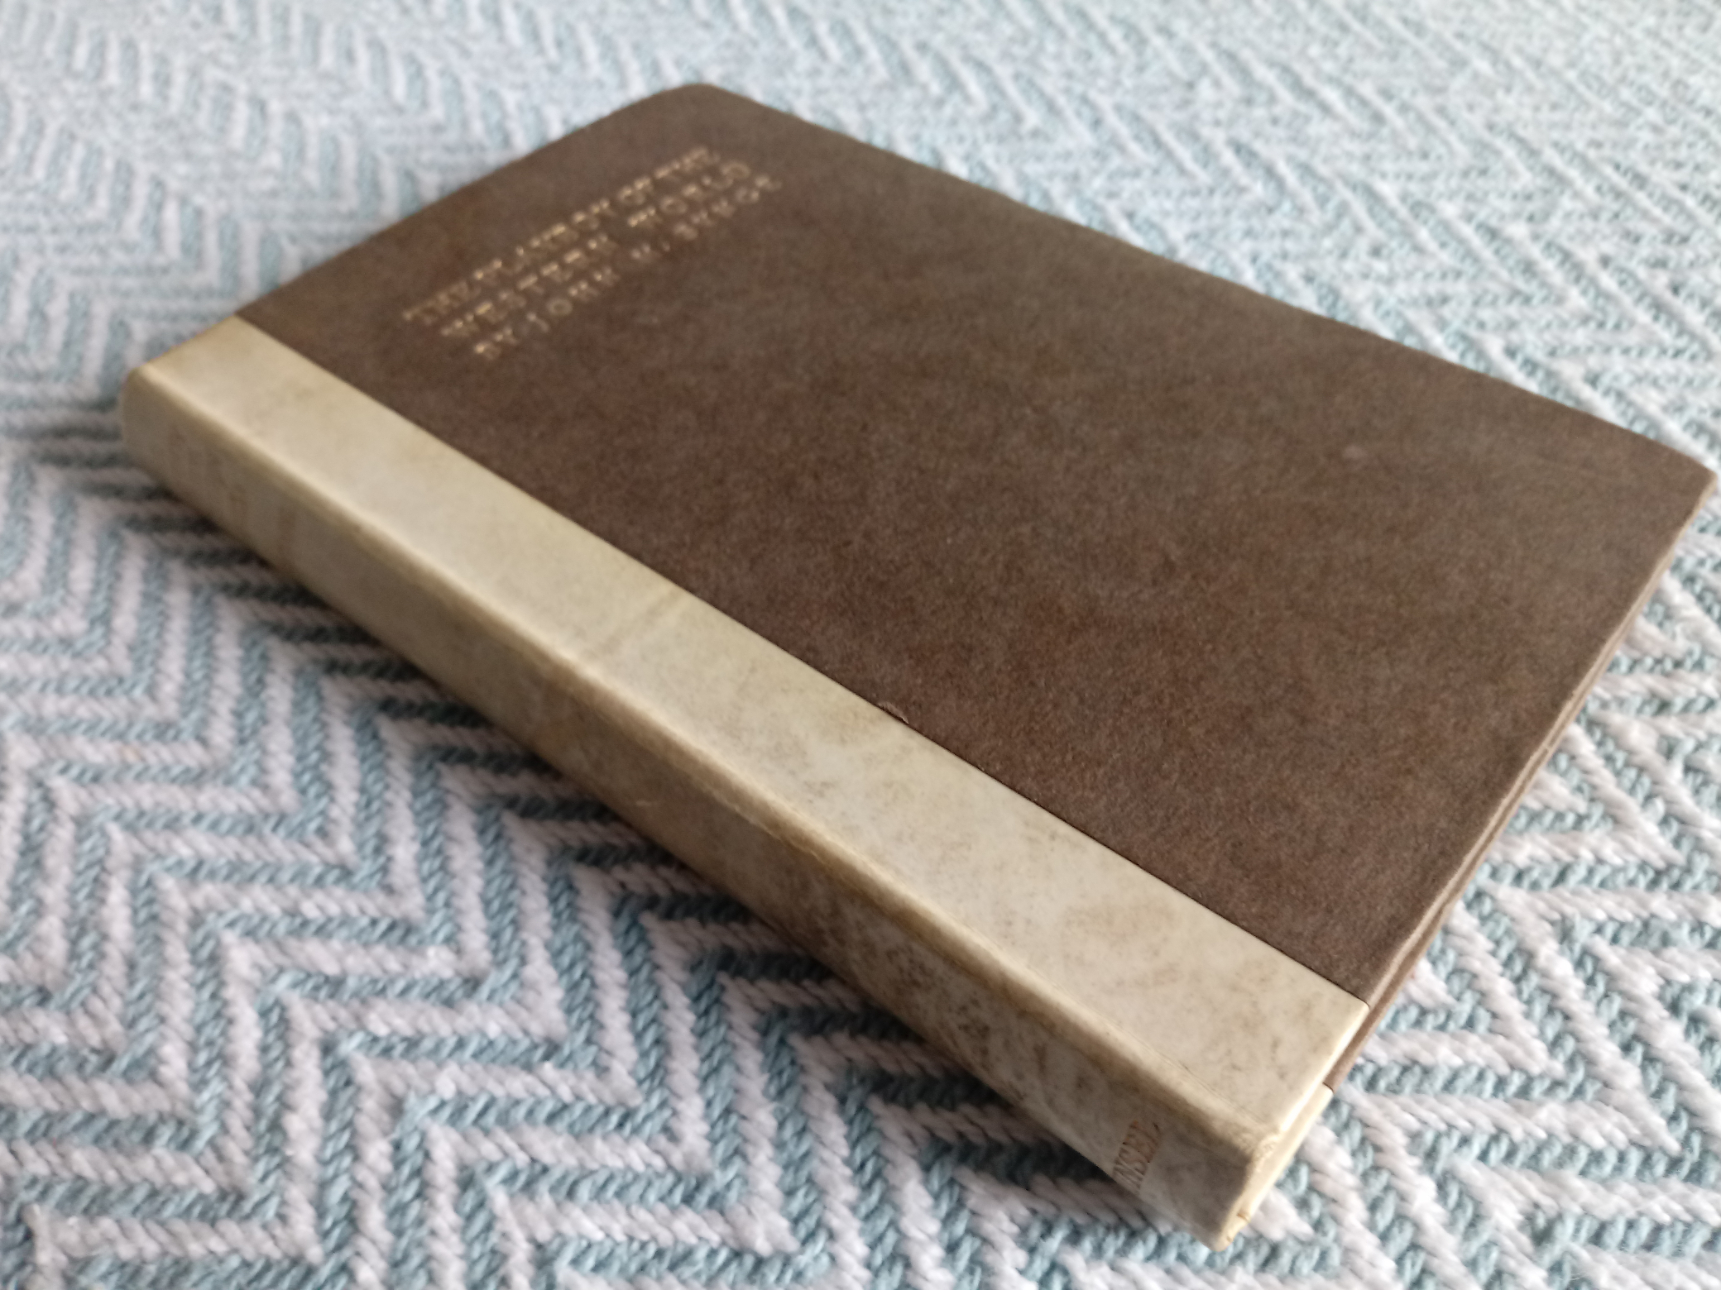 The Playboy Of The Western World A Comedy in three Acts by John M. Synge 132 pages Published 1912